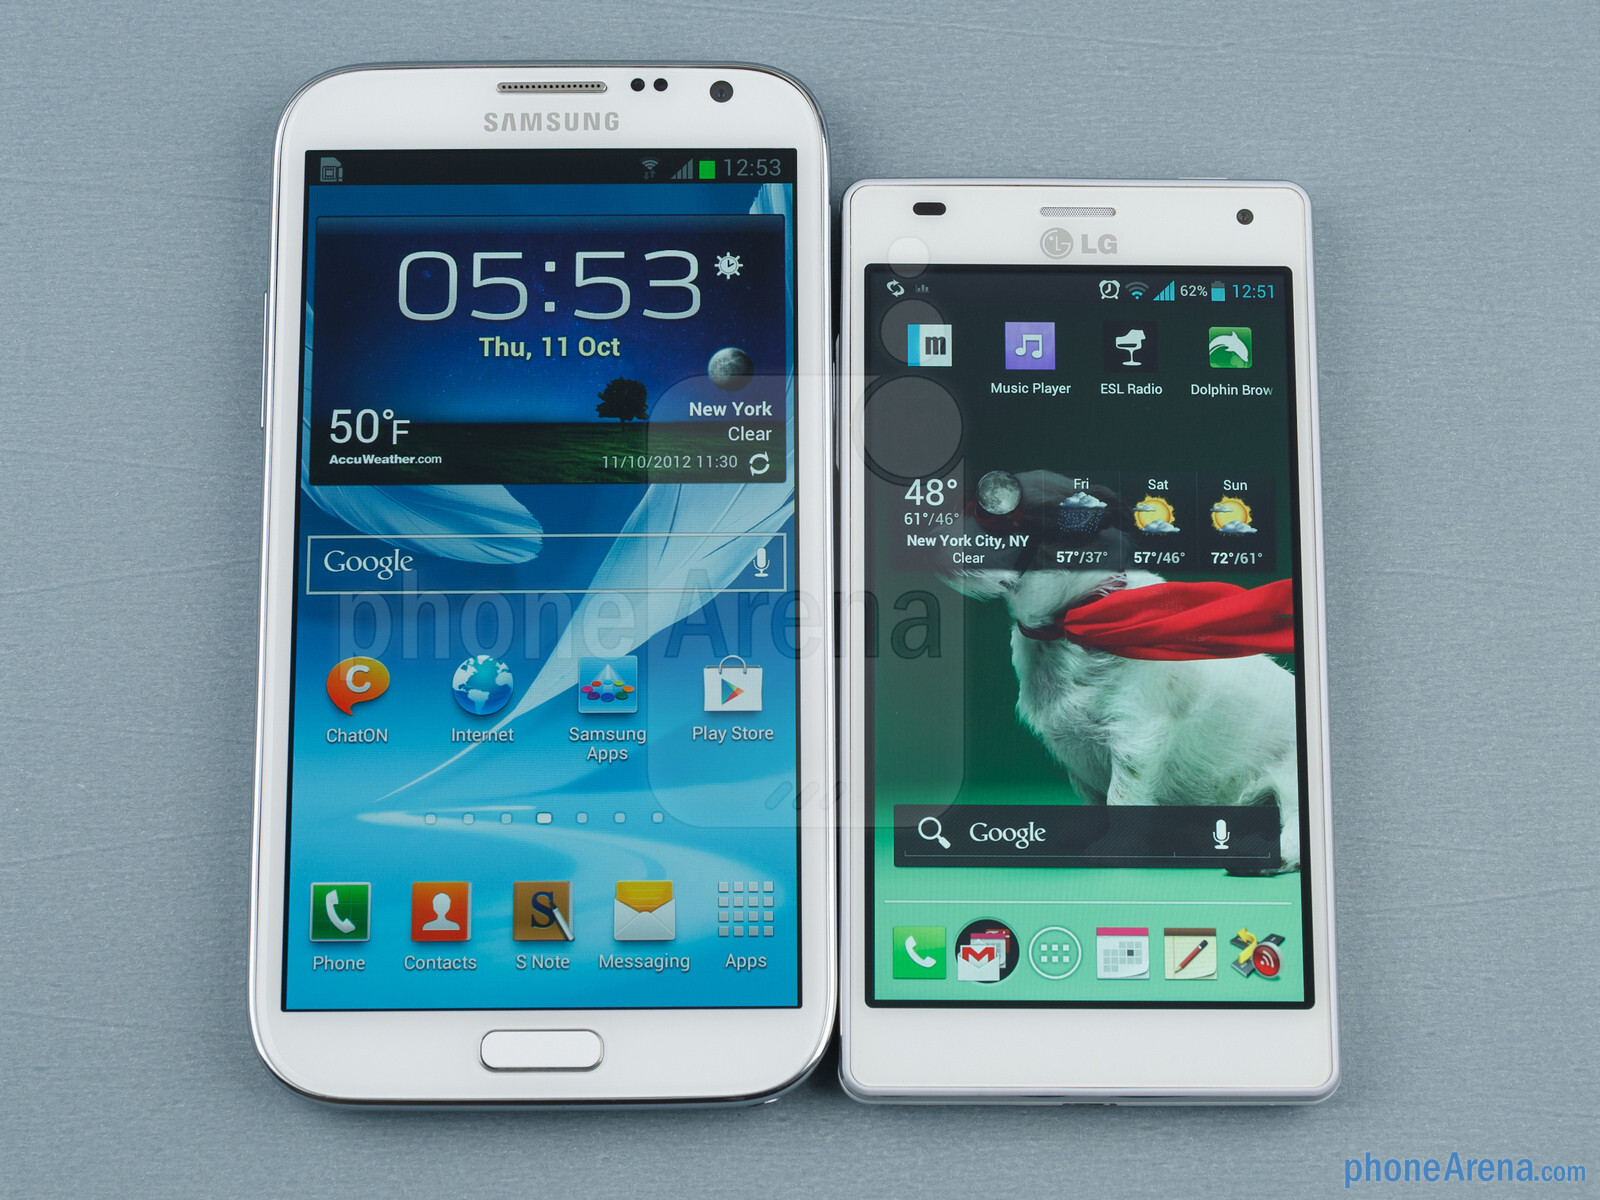 Samsung Galaxy S3 Vs Lg Optimus 4x Hd | 2017 - 2018 Best ...